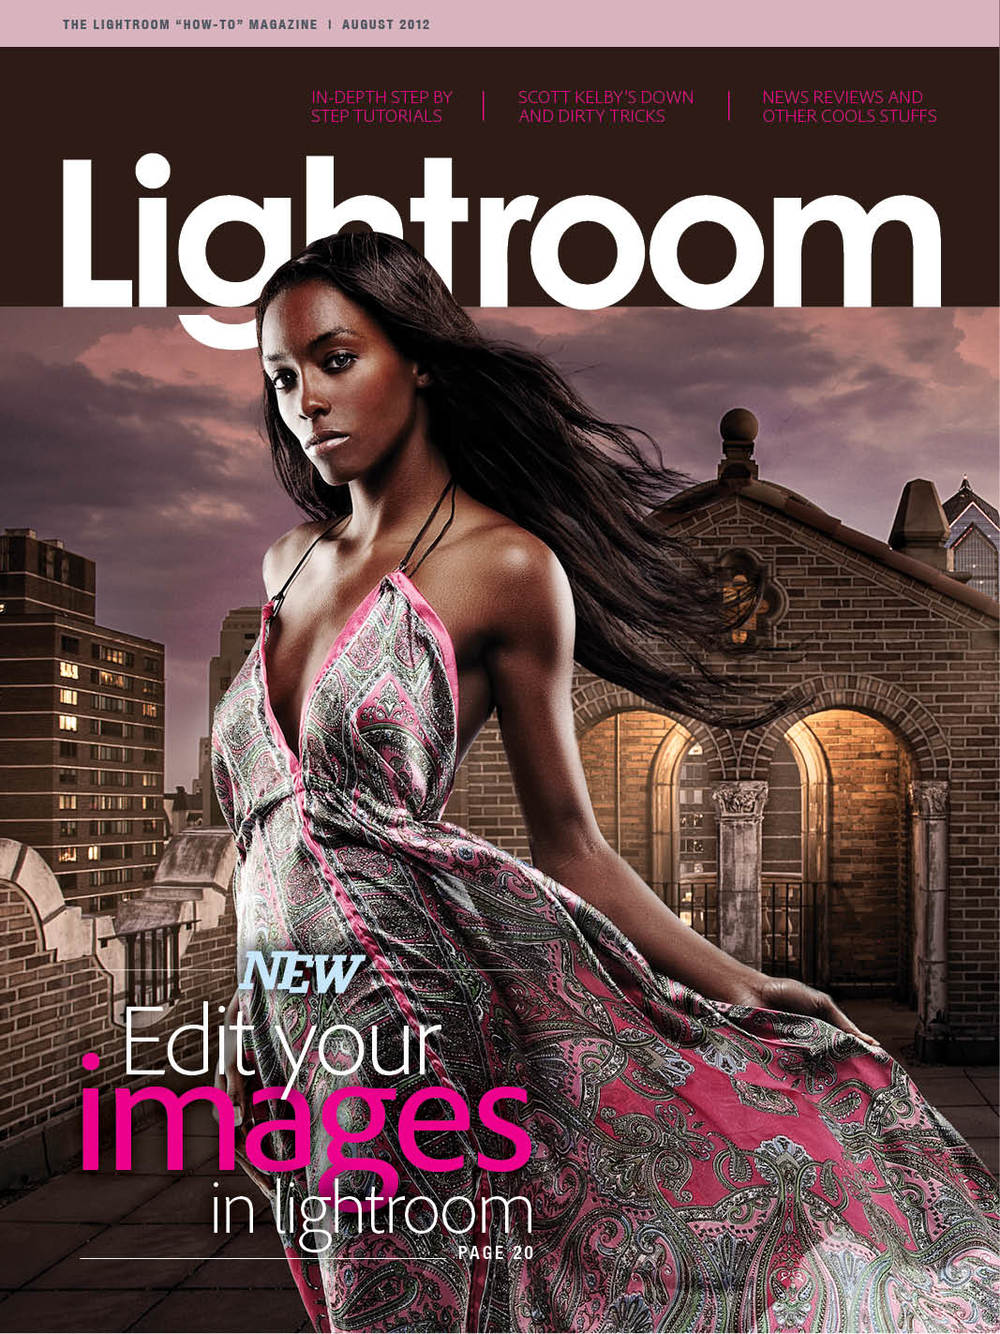 LightroomApp_Cover.jpg